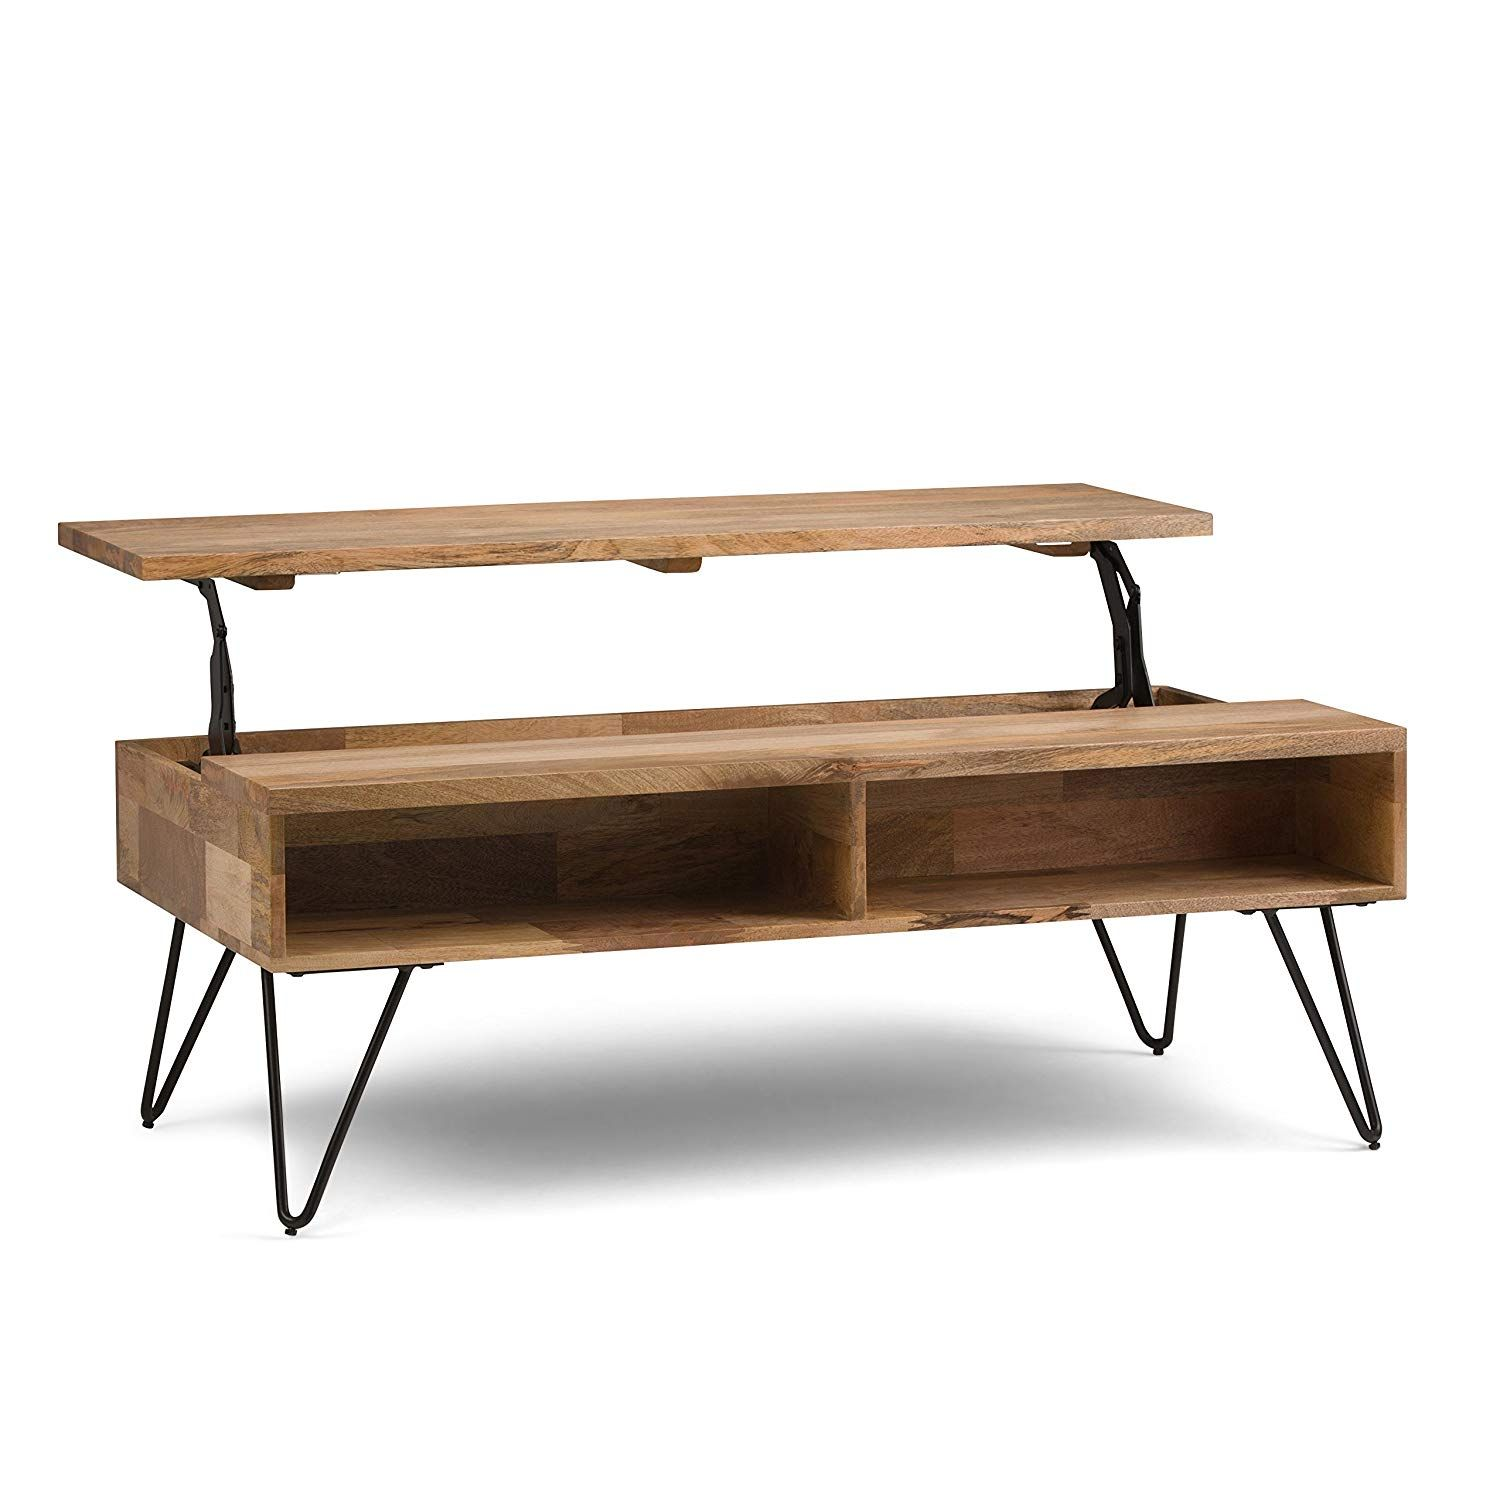 Lee Image By Hartman Haus Mango Wood Coffee Table Coffee Table